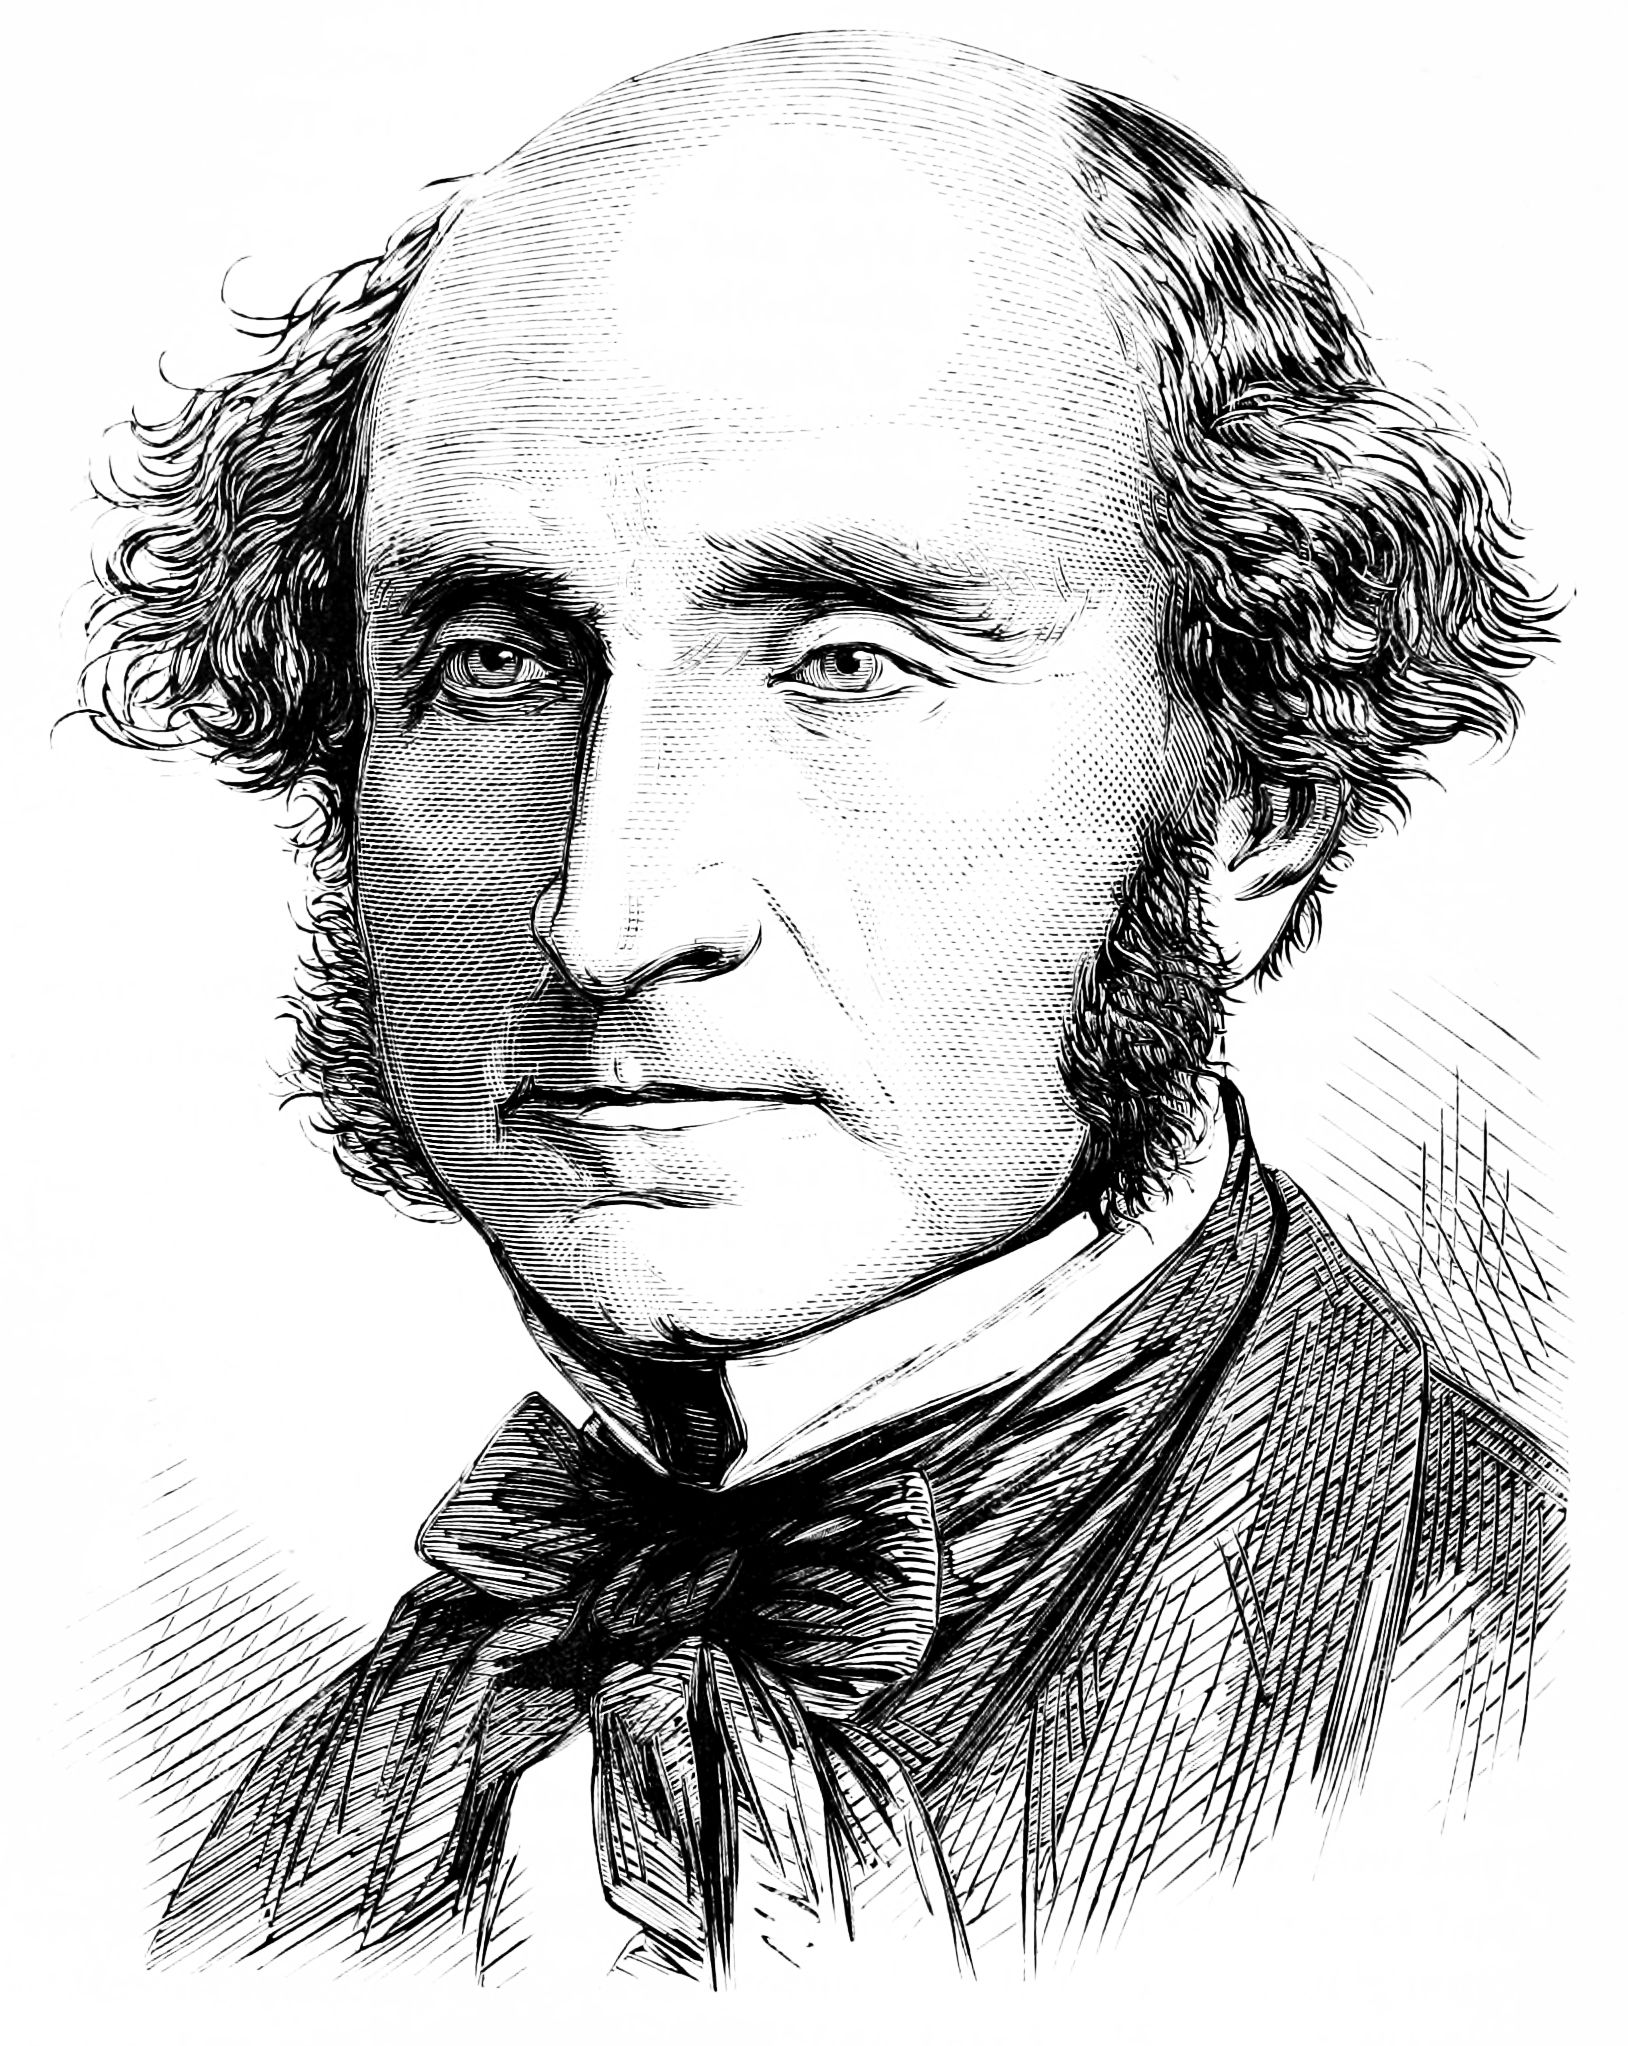 john stuart mill on liberty and other essays sparknotes